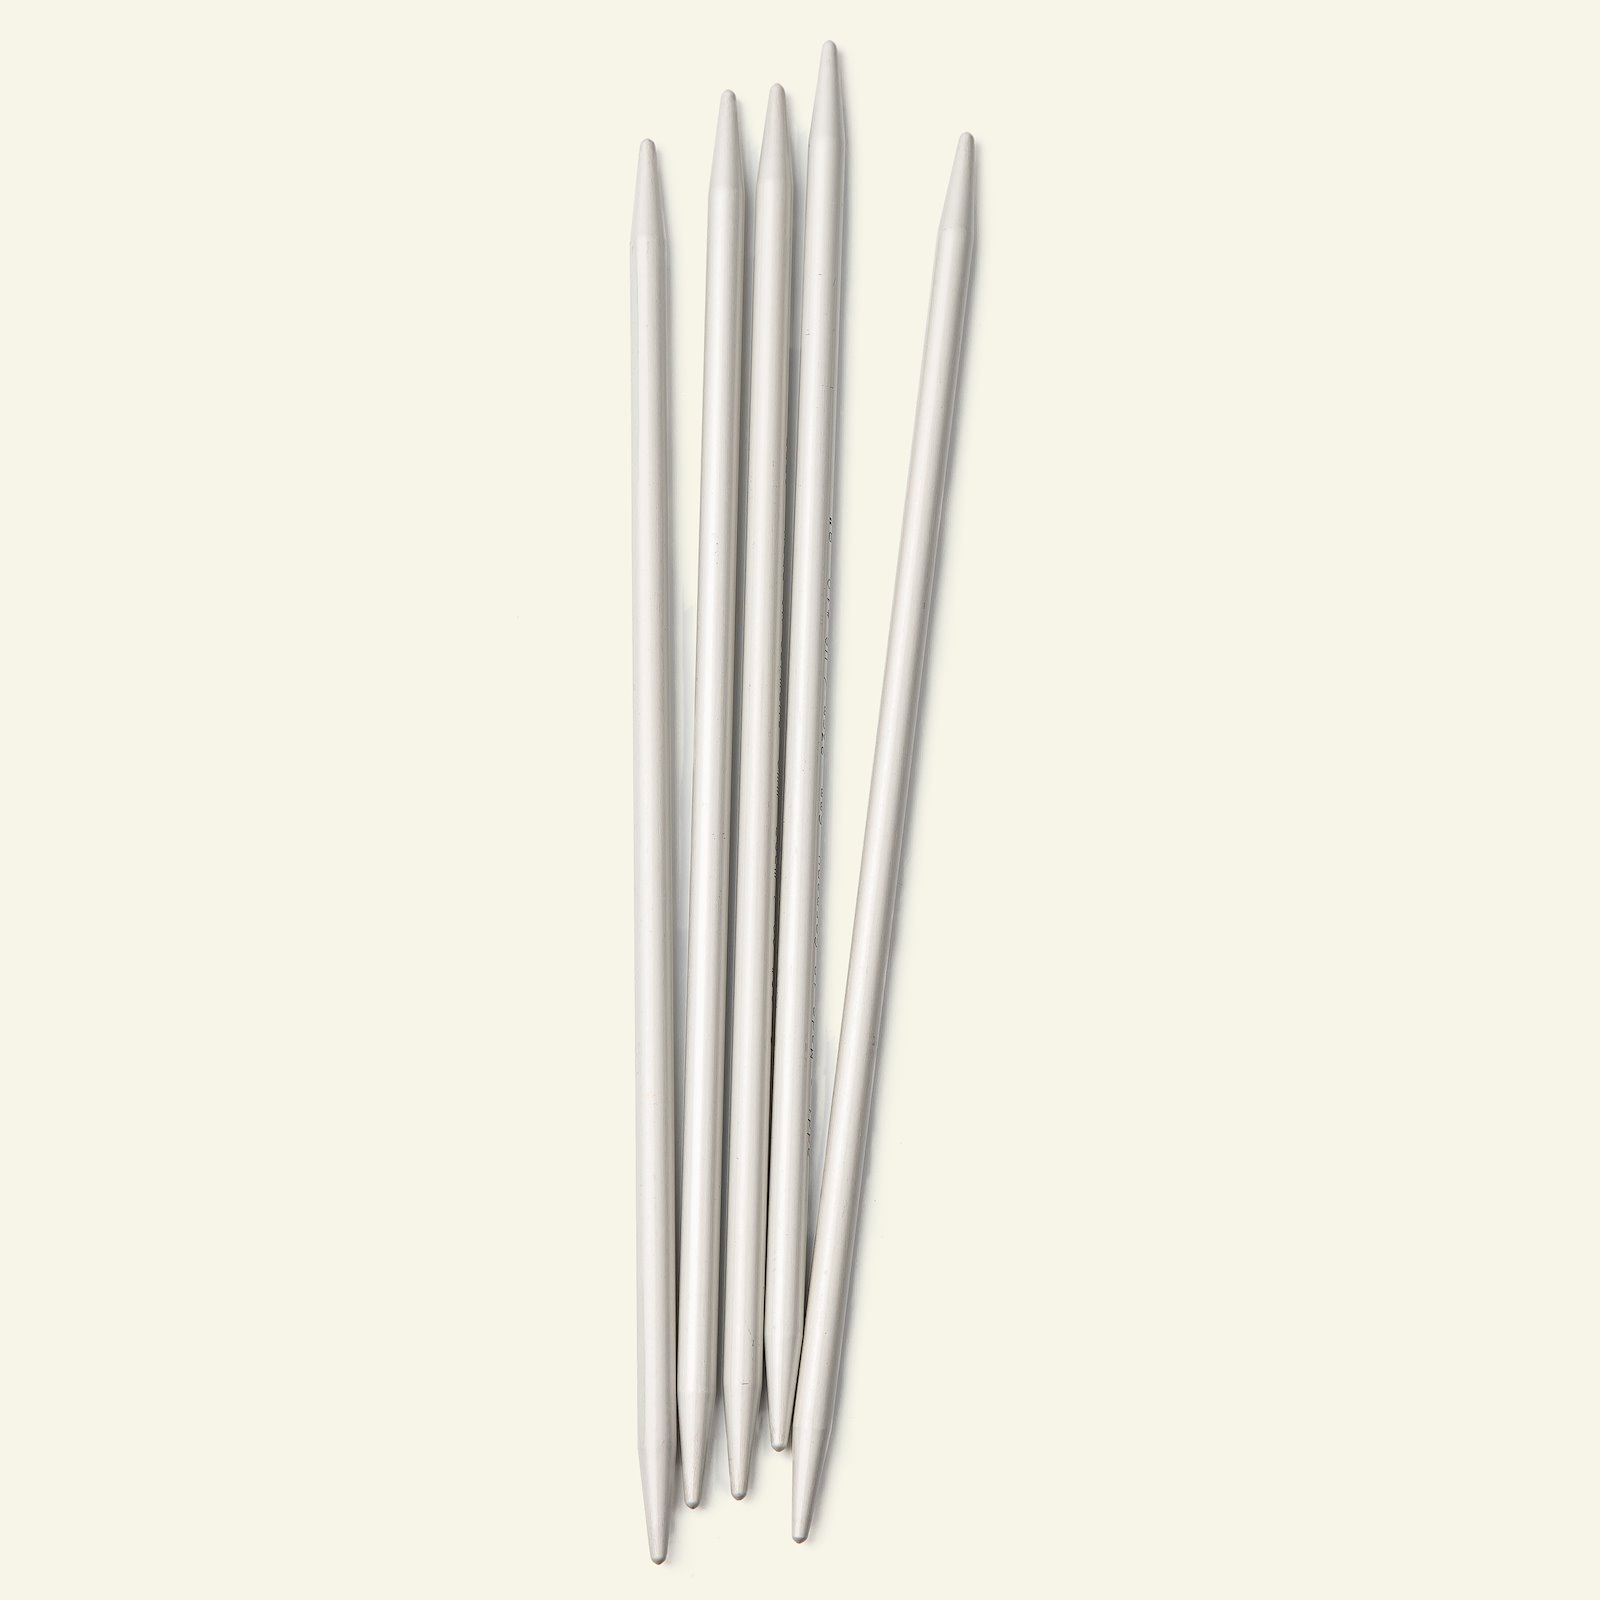 Addi double pointed needle 23cm 8mm 83057_pack